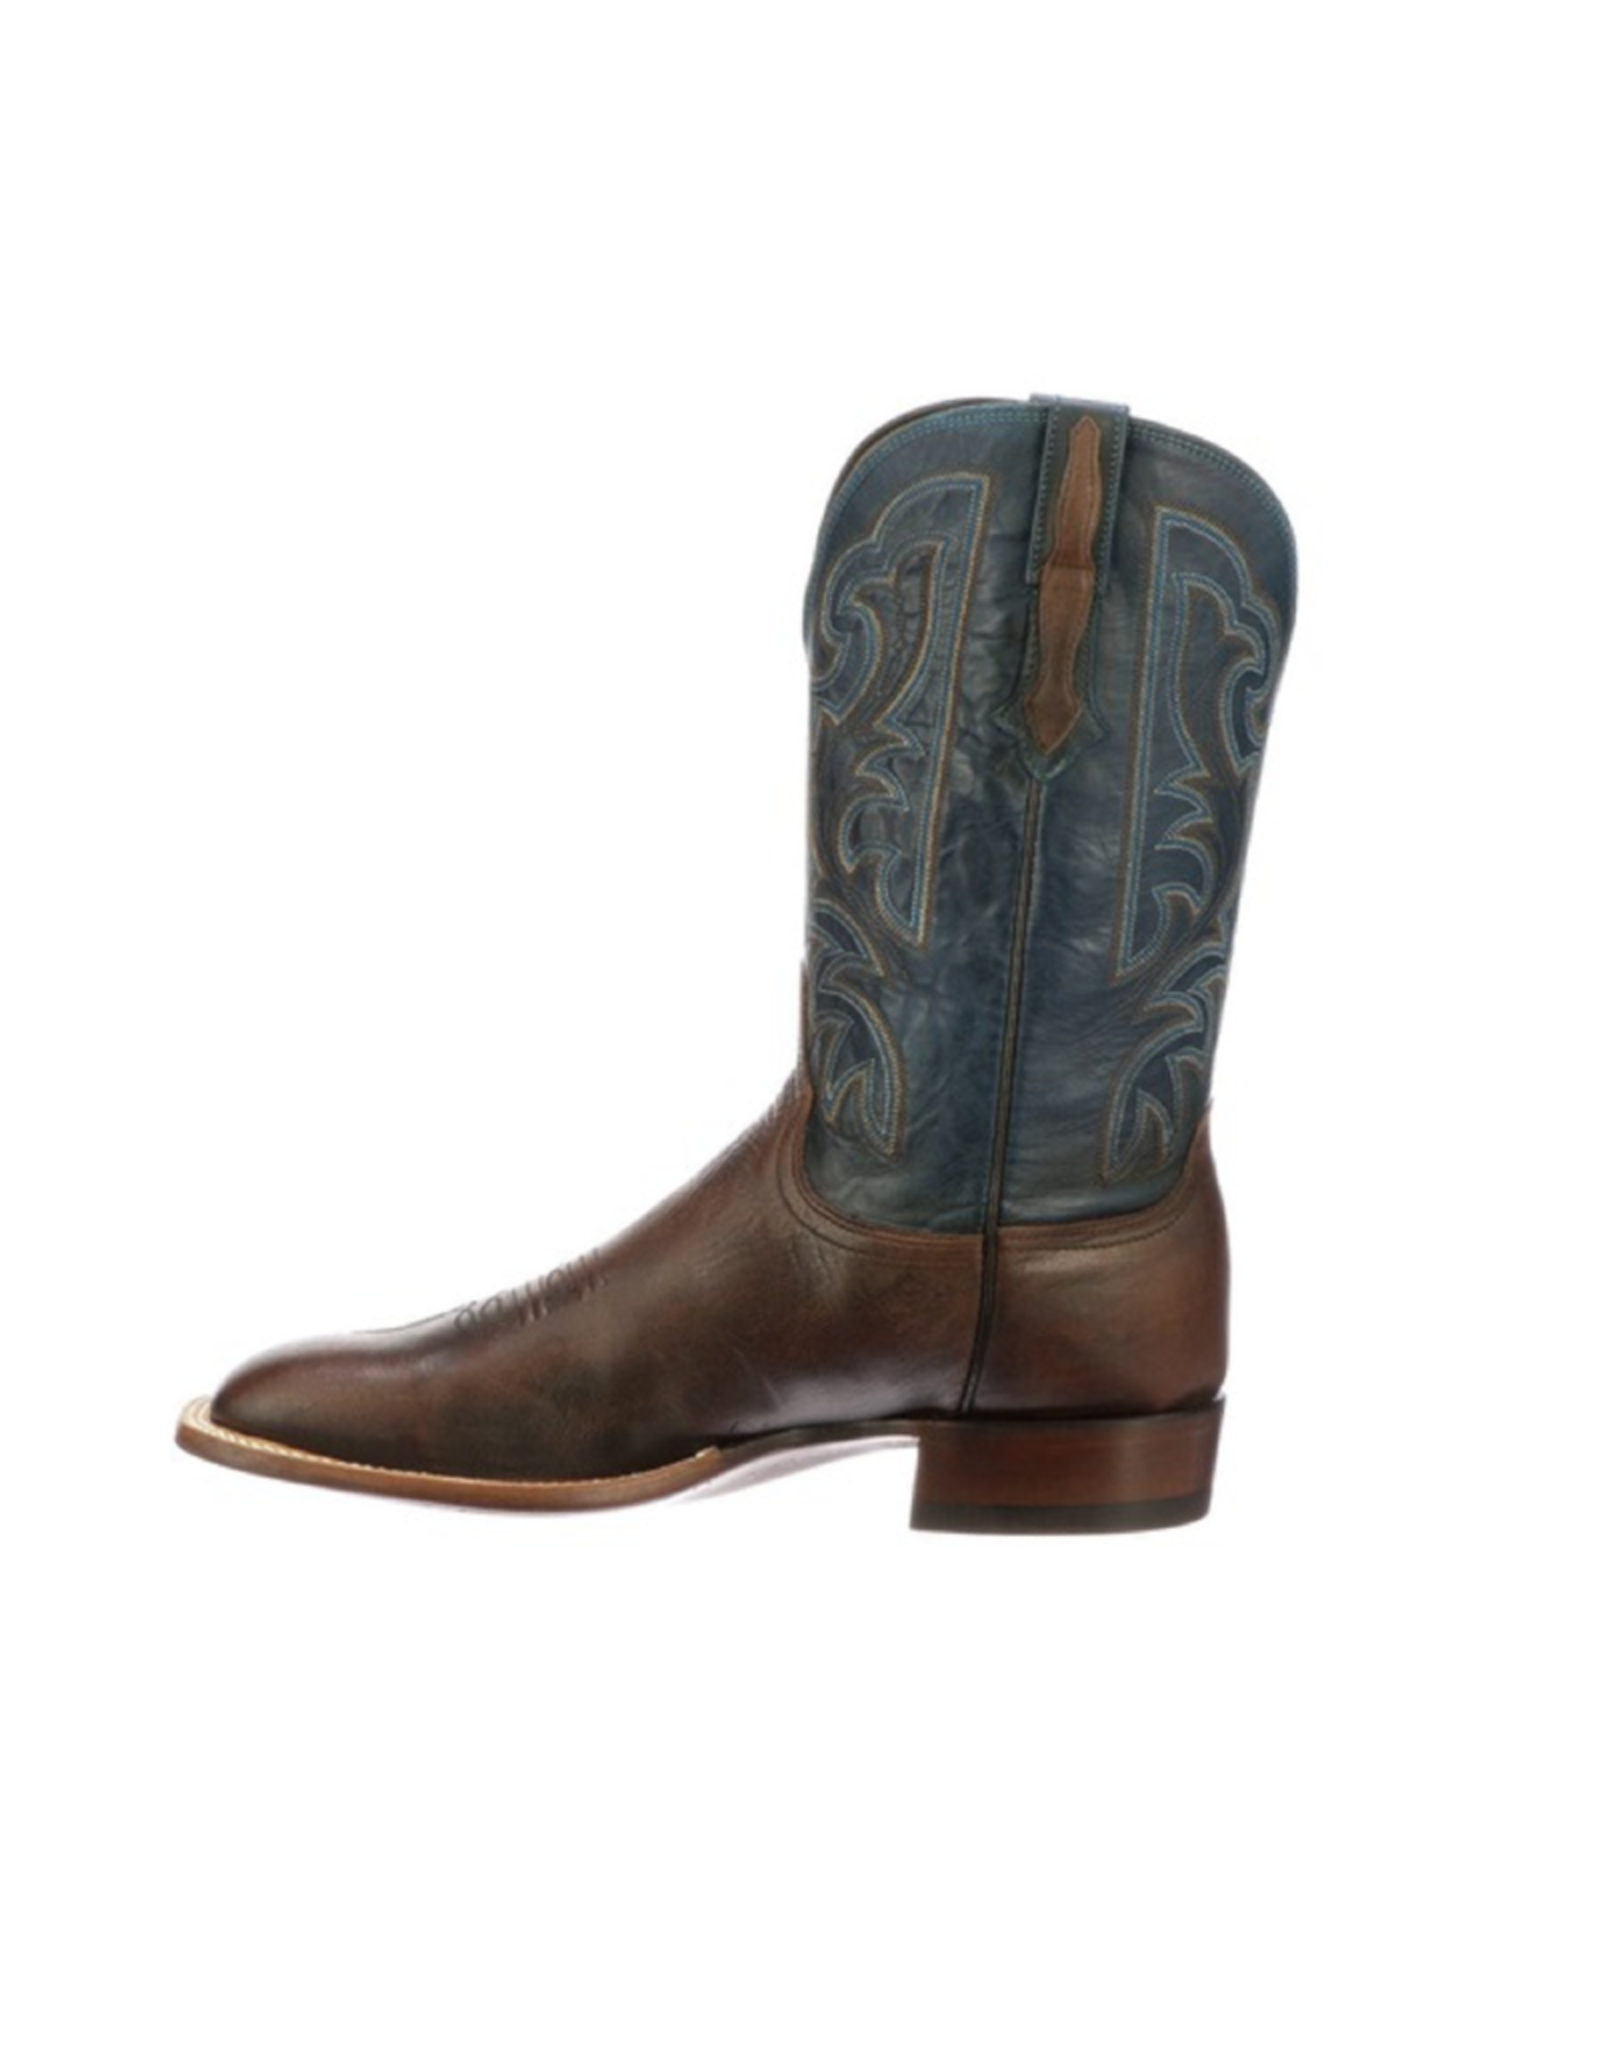 Lucchese Brock, Goat Boots